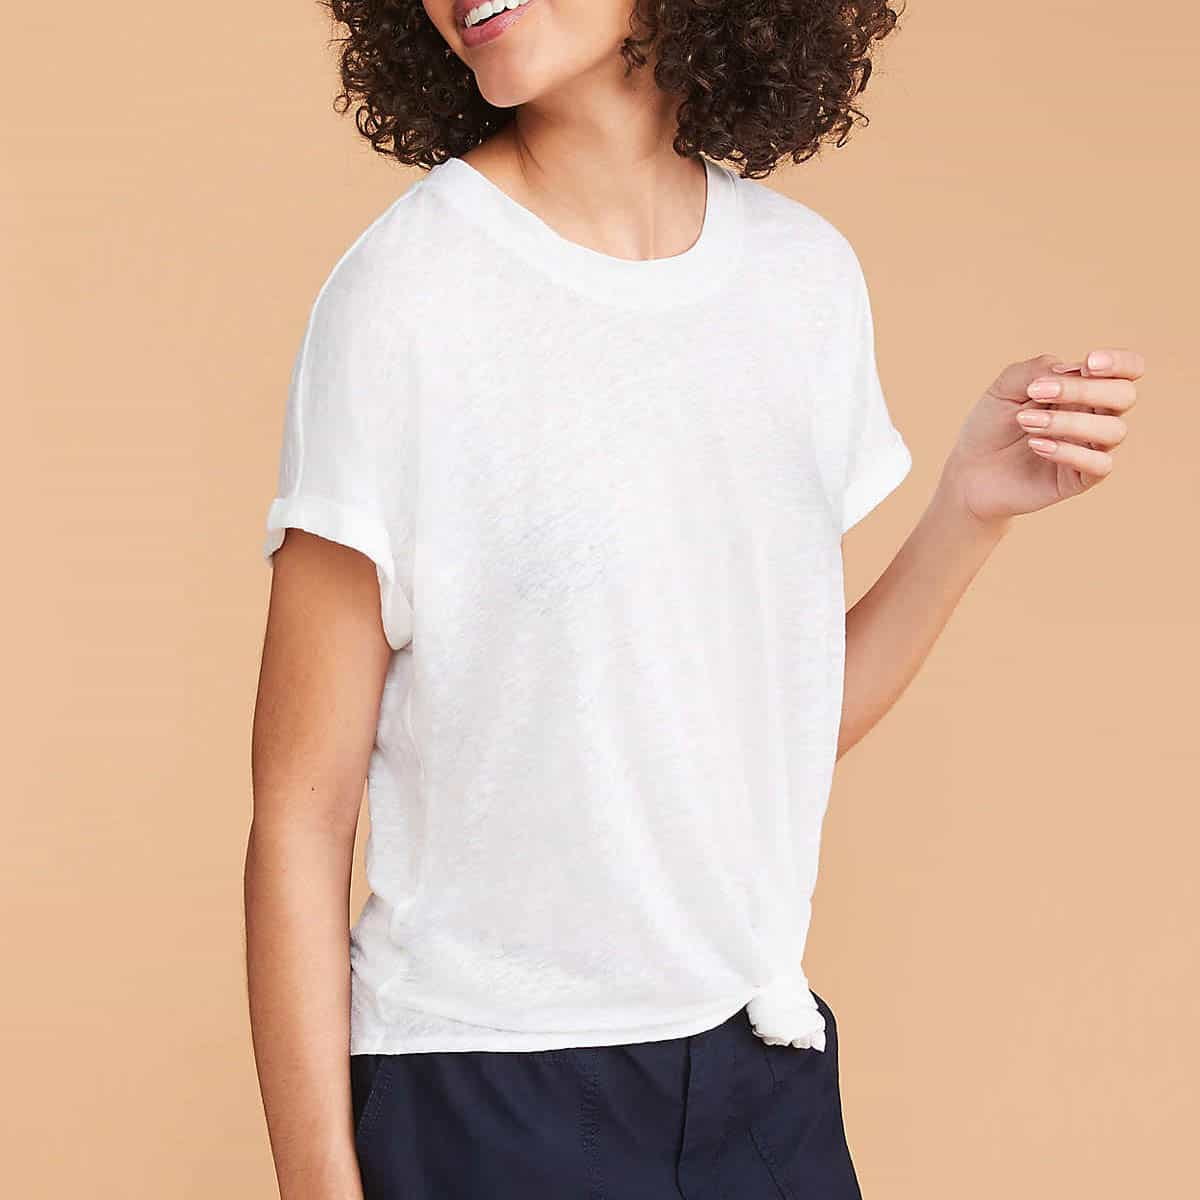 10 Stylish and Comfy Summer Clothes I'm Adding to My Wardrobe Right Now 3